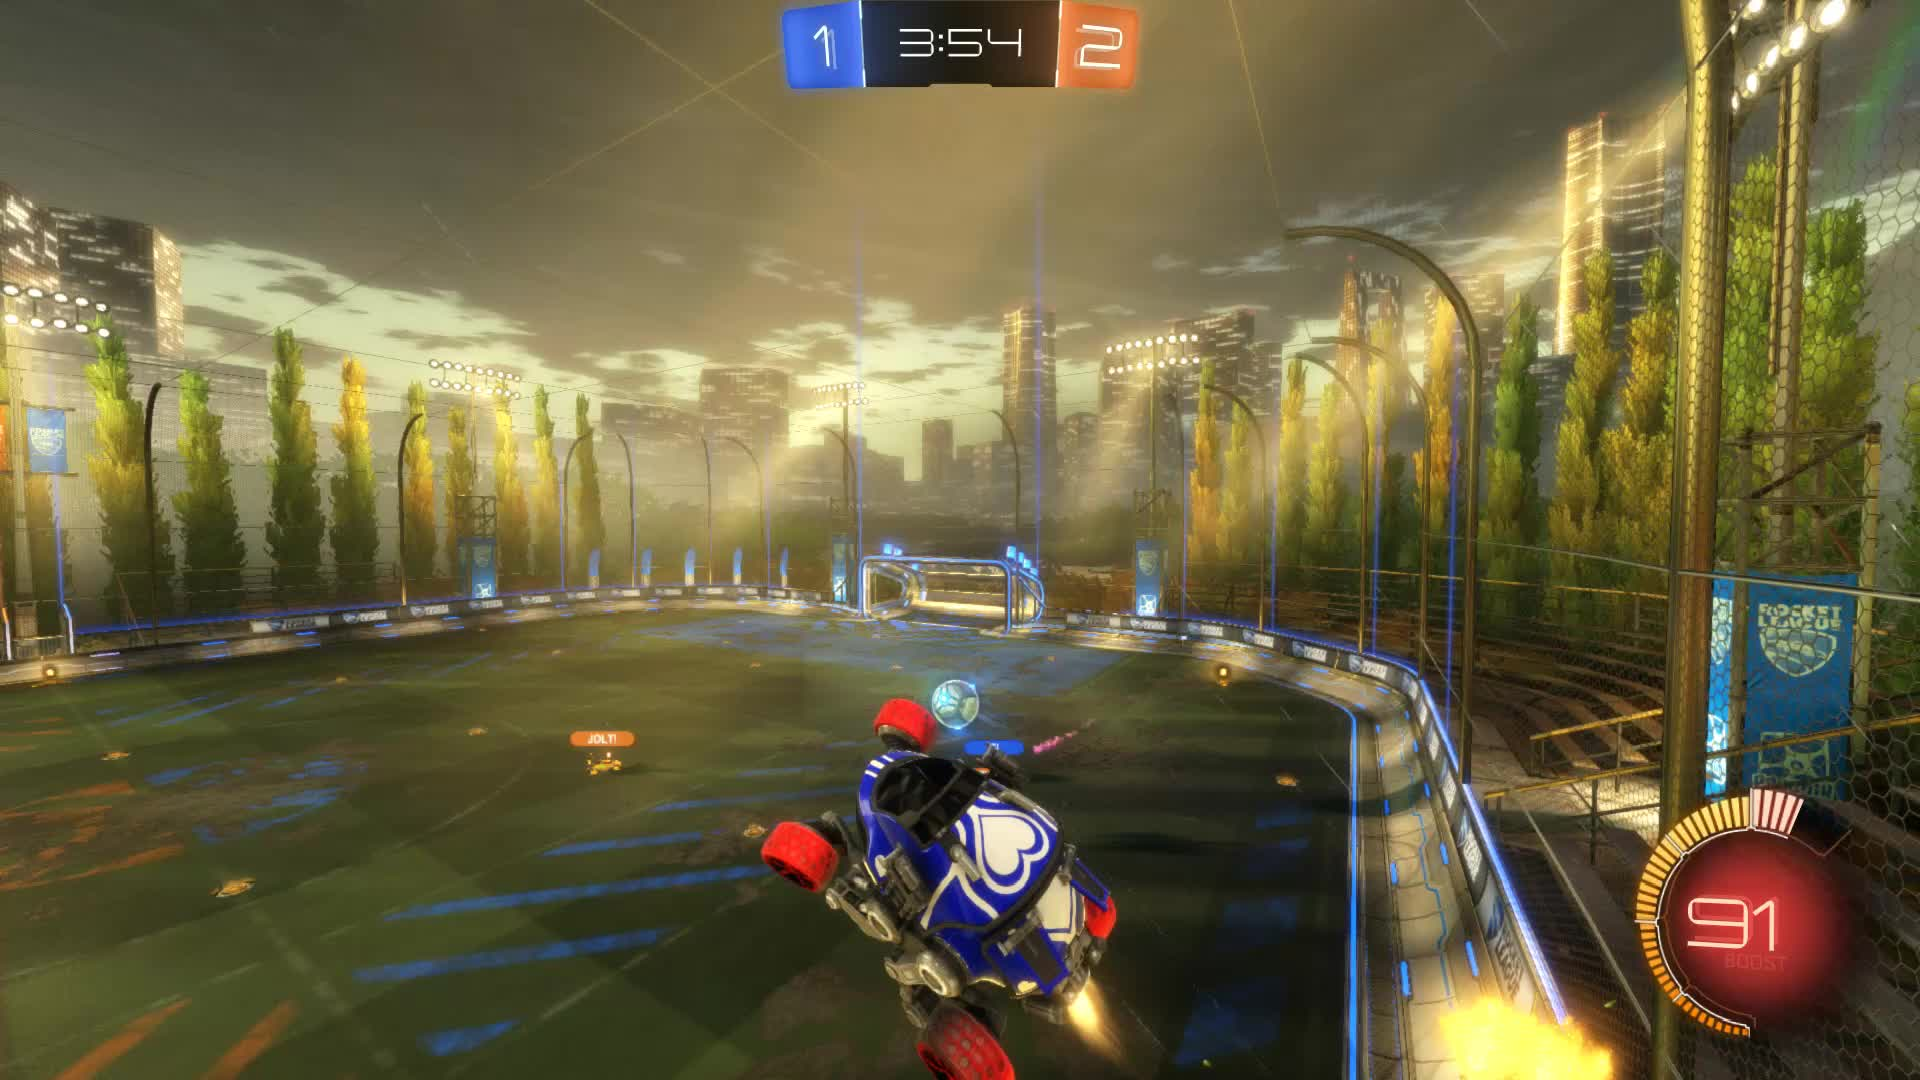 Gif Your Game, GifYourGame, Goal, Lion, Rocket League, RocketLeague, Goal 4: Lion GIFs